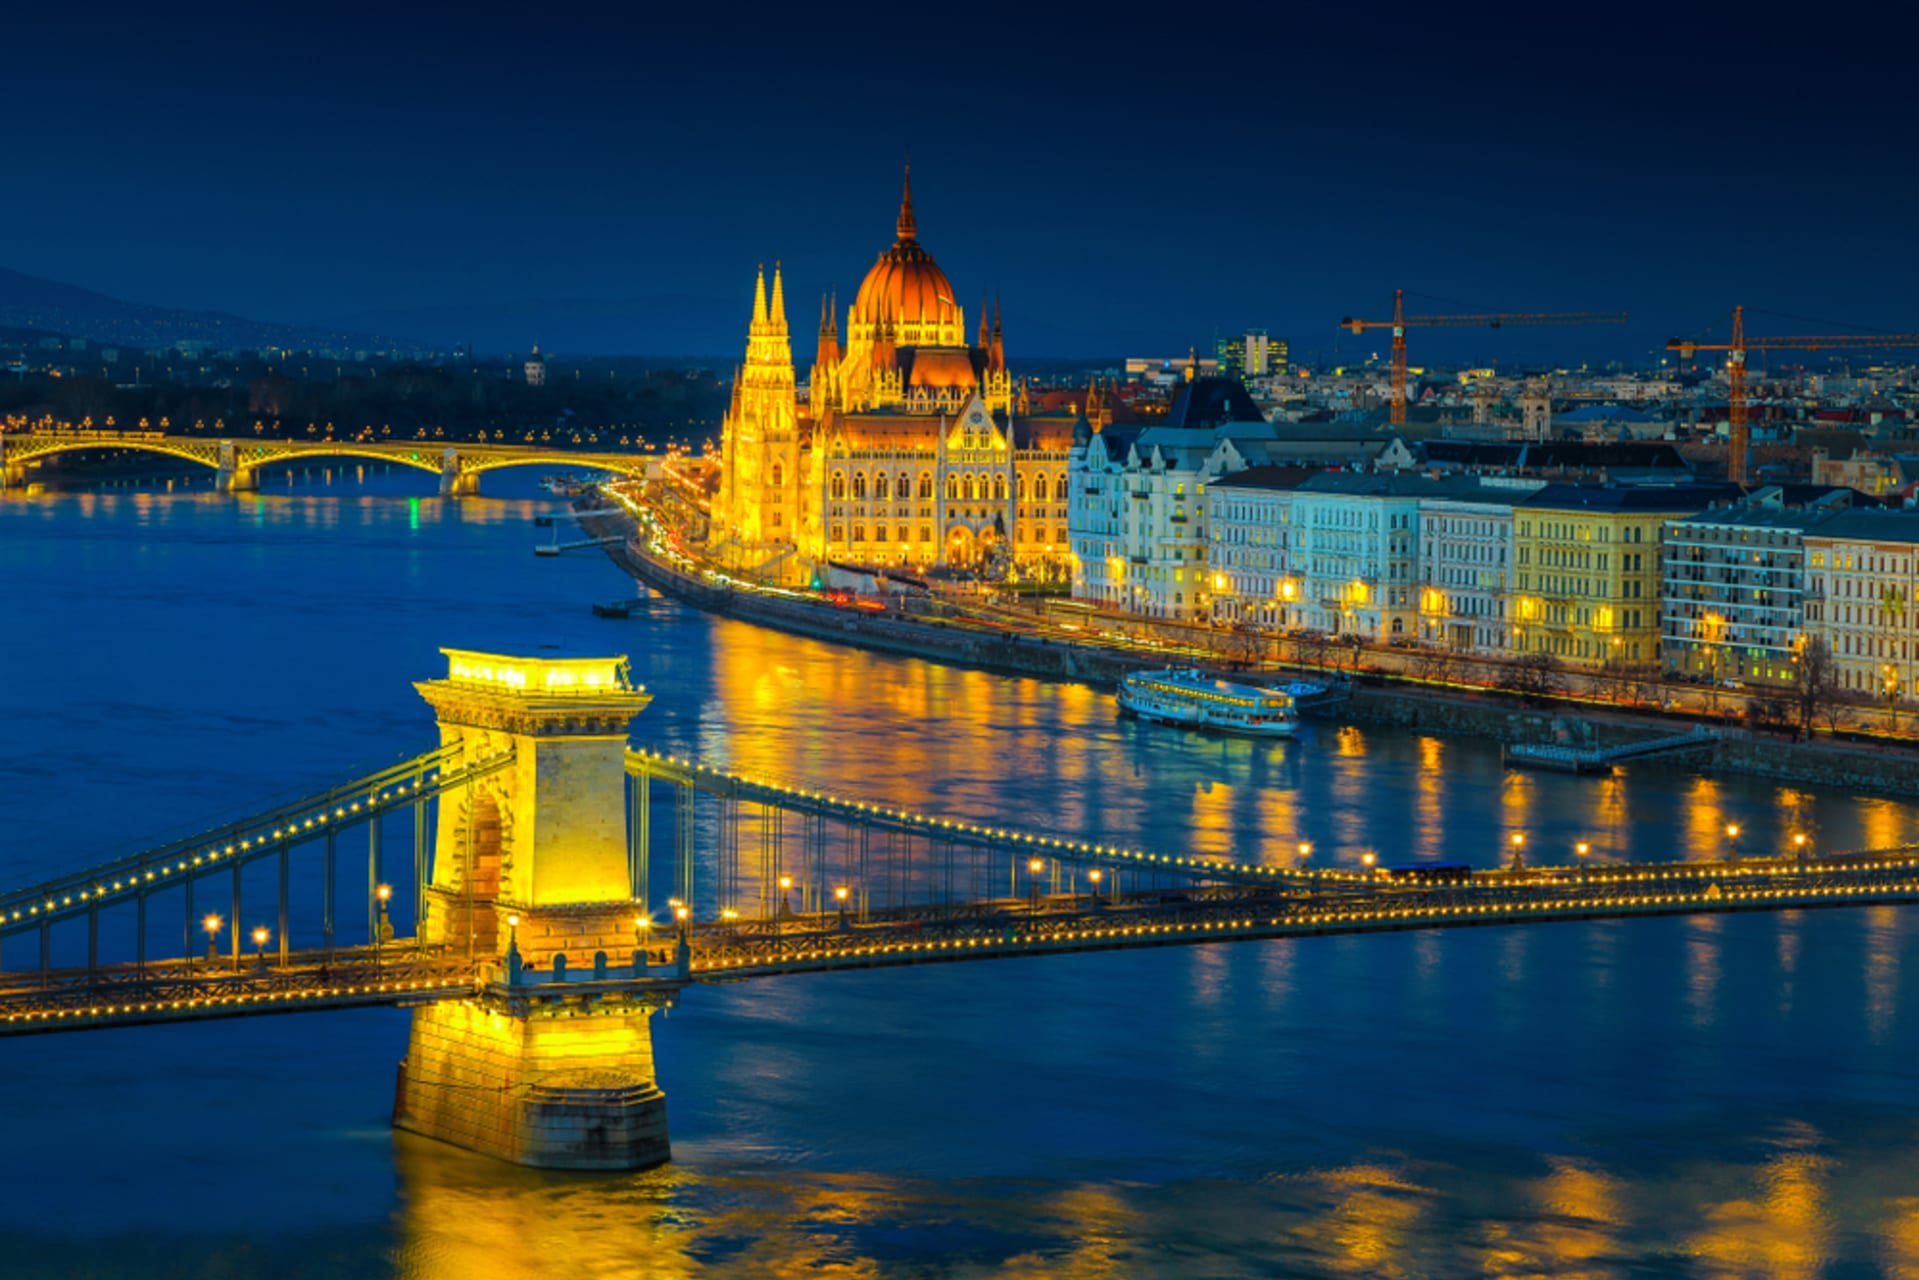 Budapest - Valentine's Day Special - A Date in Lovely Budapest